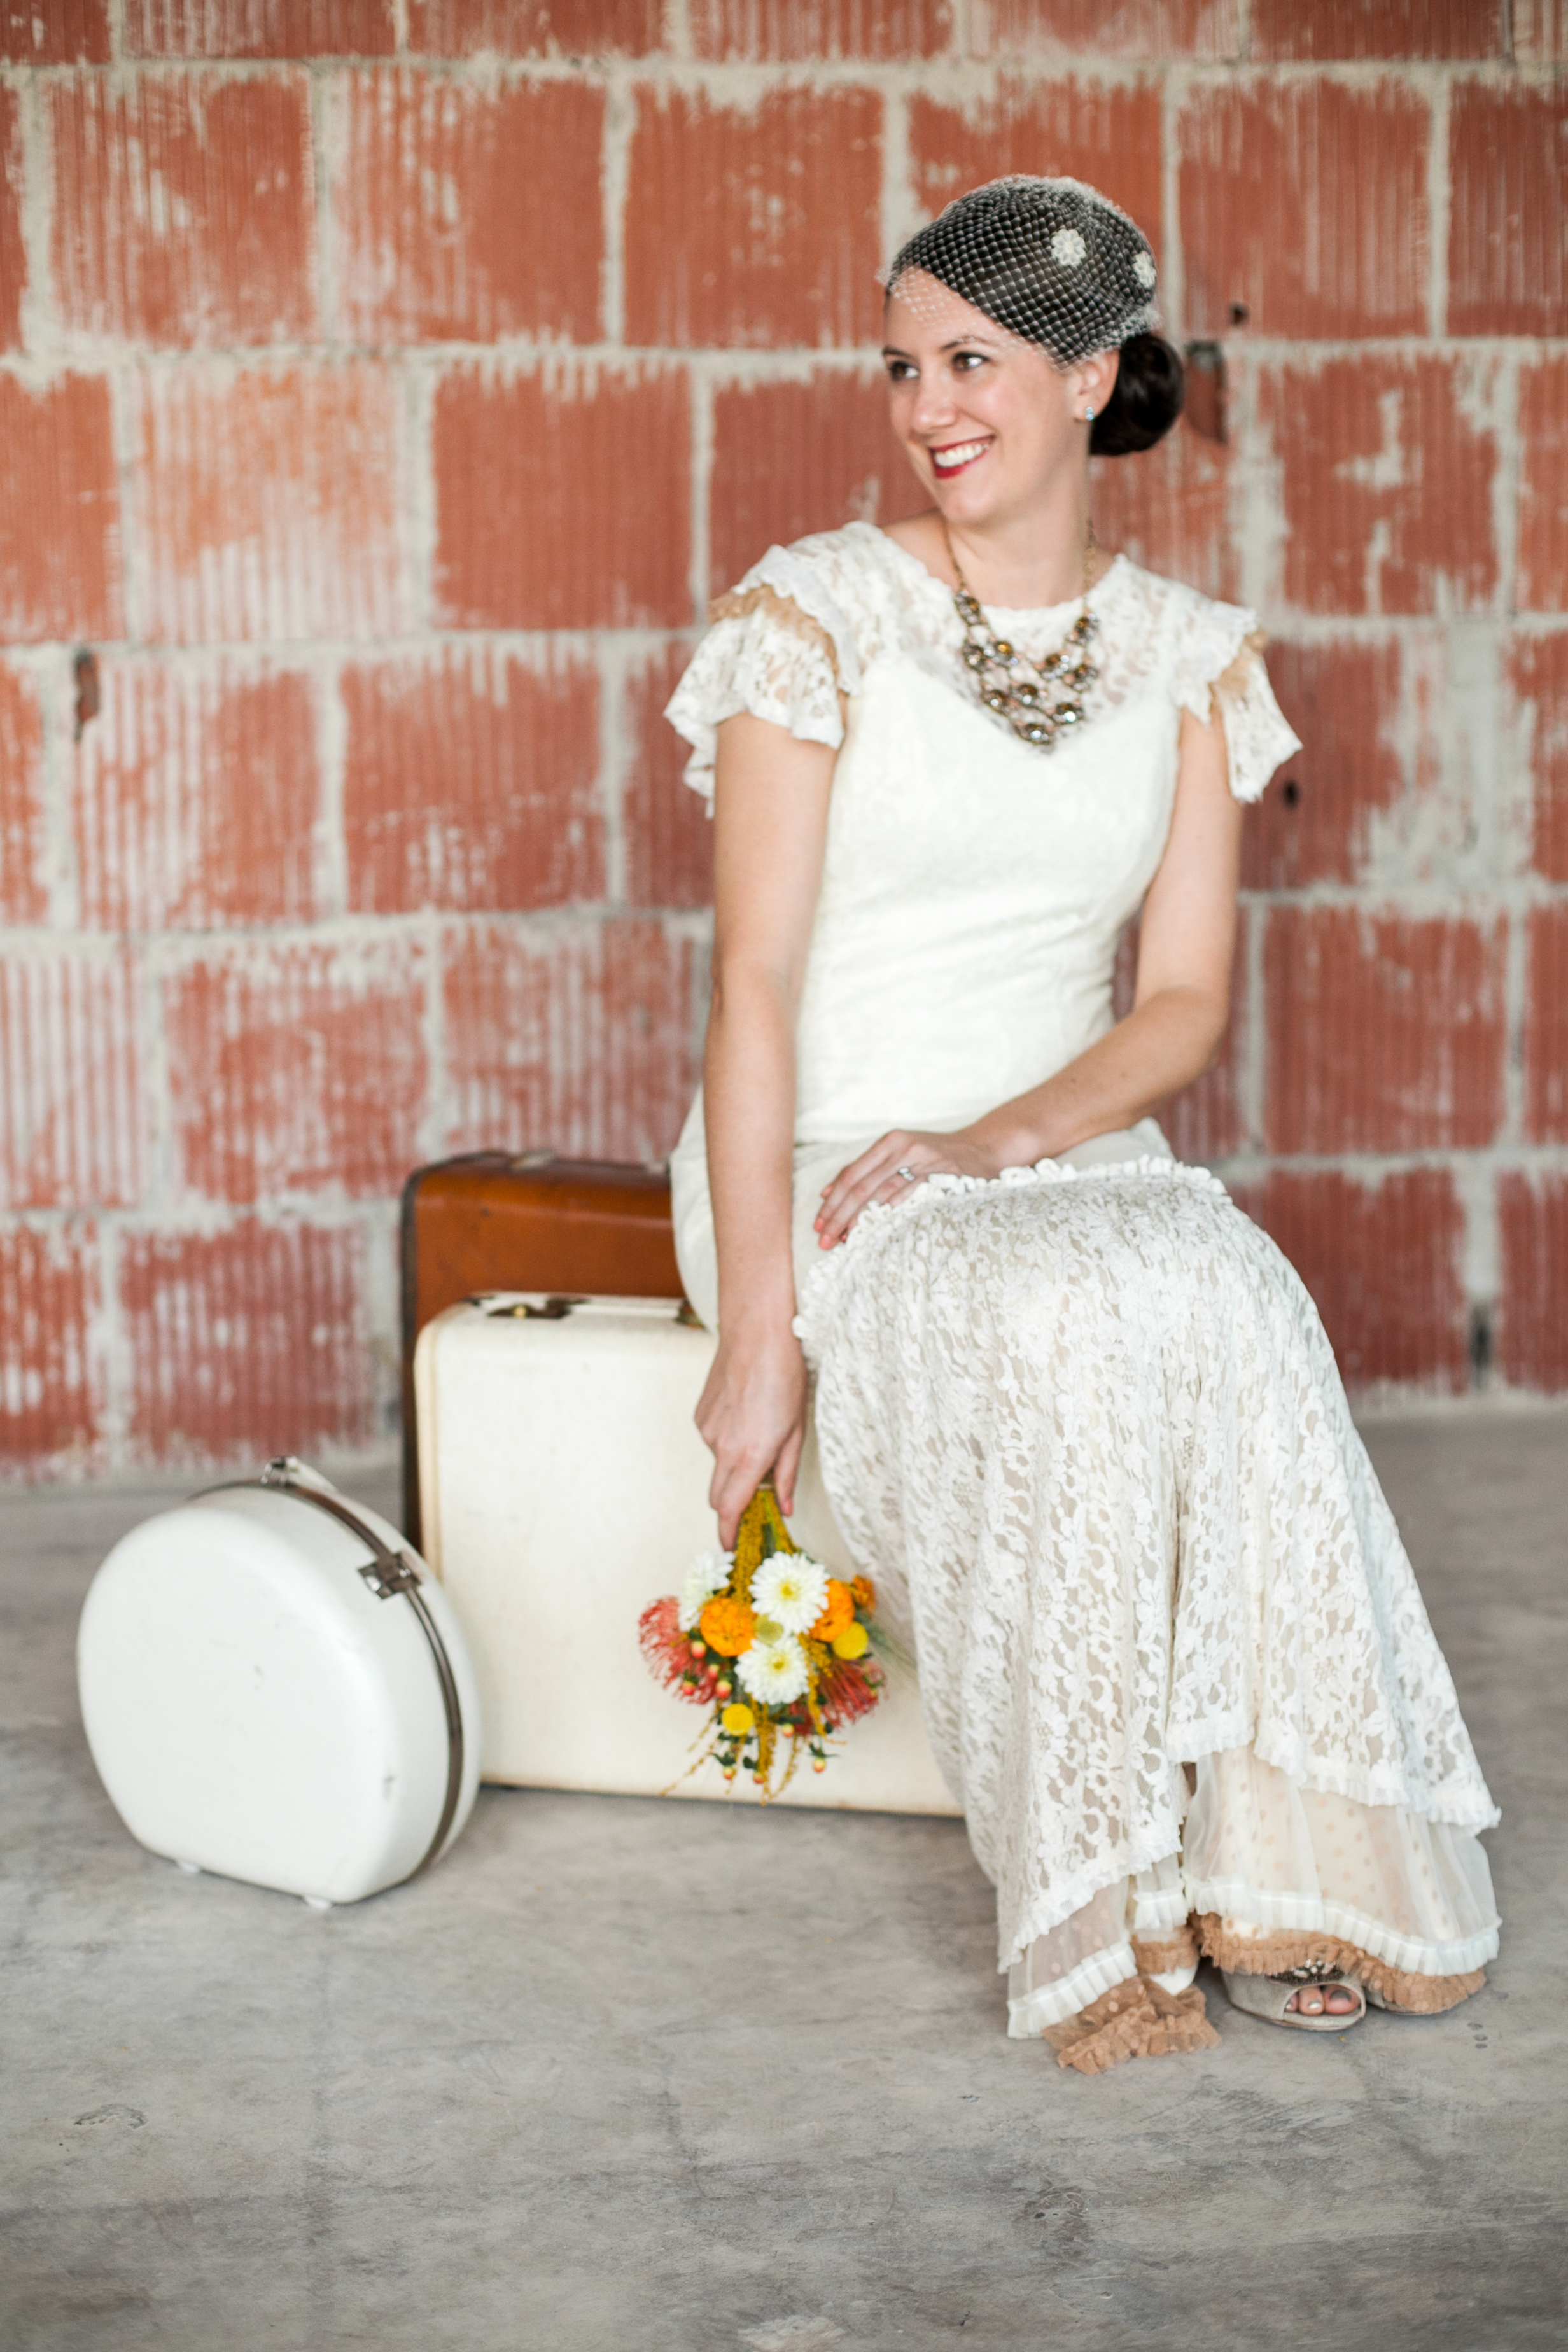 Bridal portrait session at the 1940 Airport Terminal Museum near Hobby Airport.